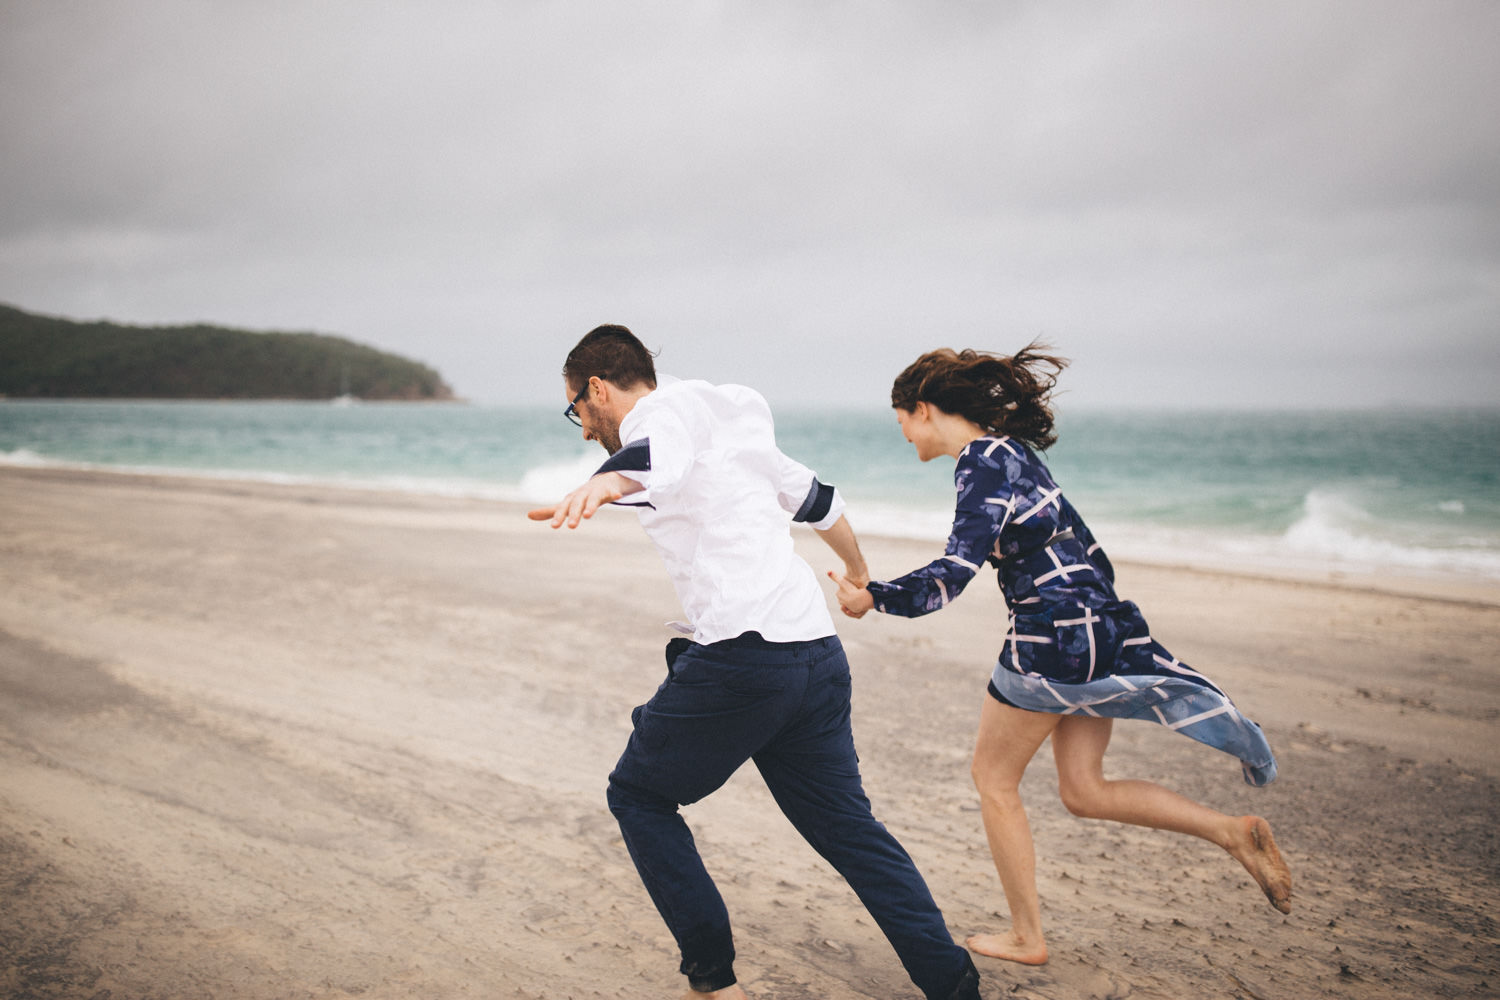 Rob-Kaity-Island-Engagement-Session-0037.jpg